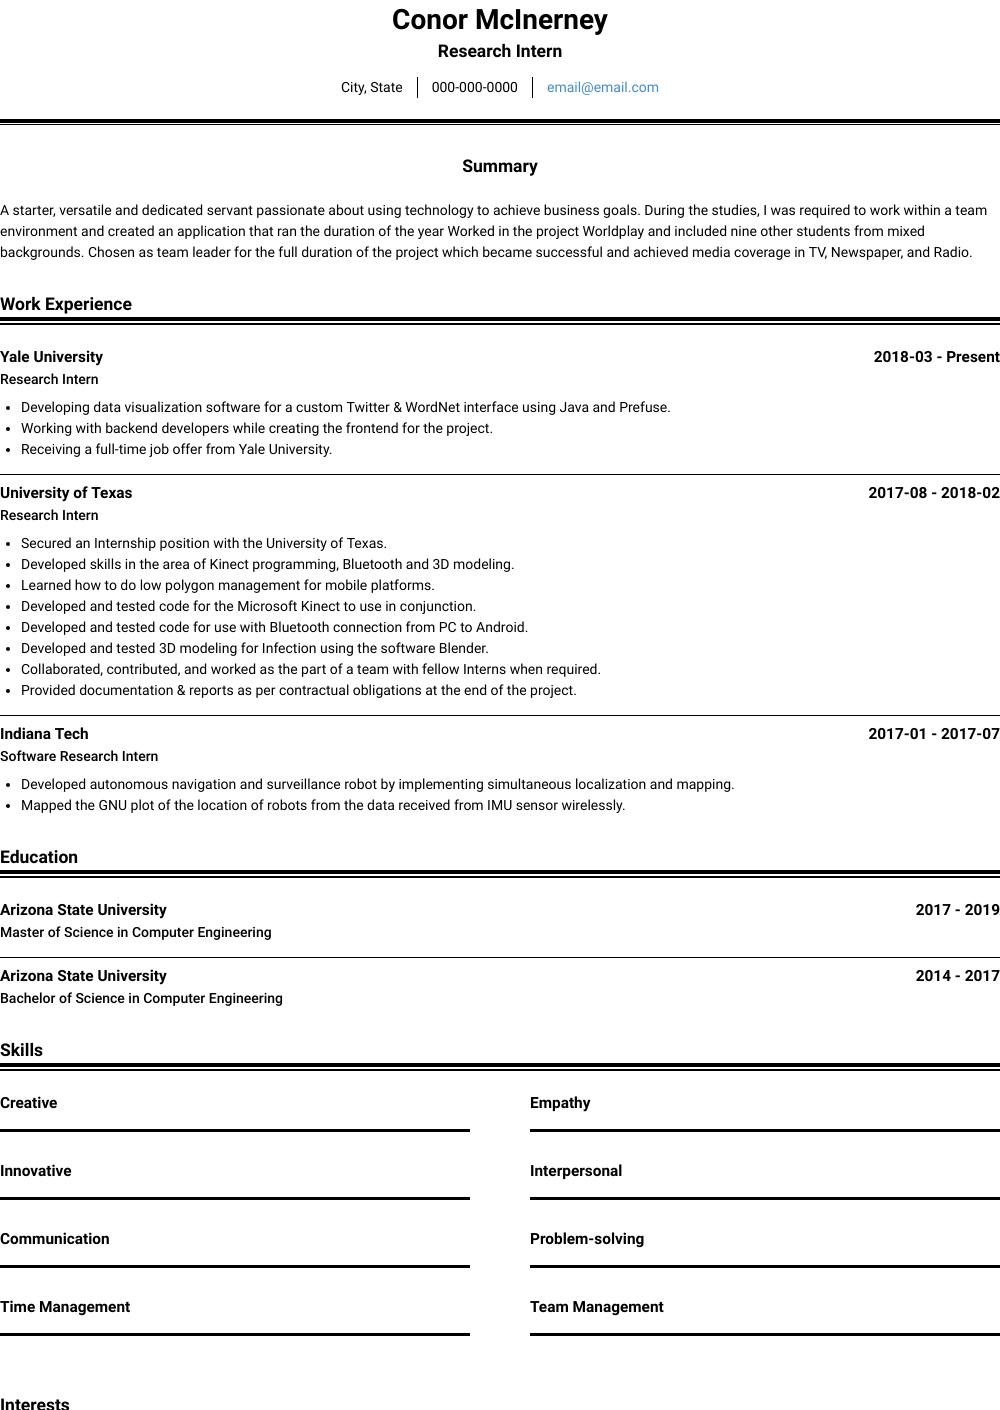 Research Intern Resume Sample and Template